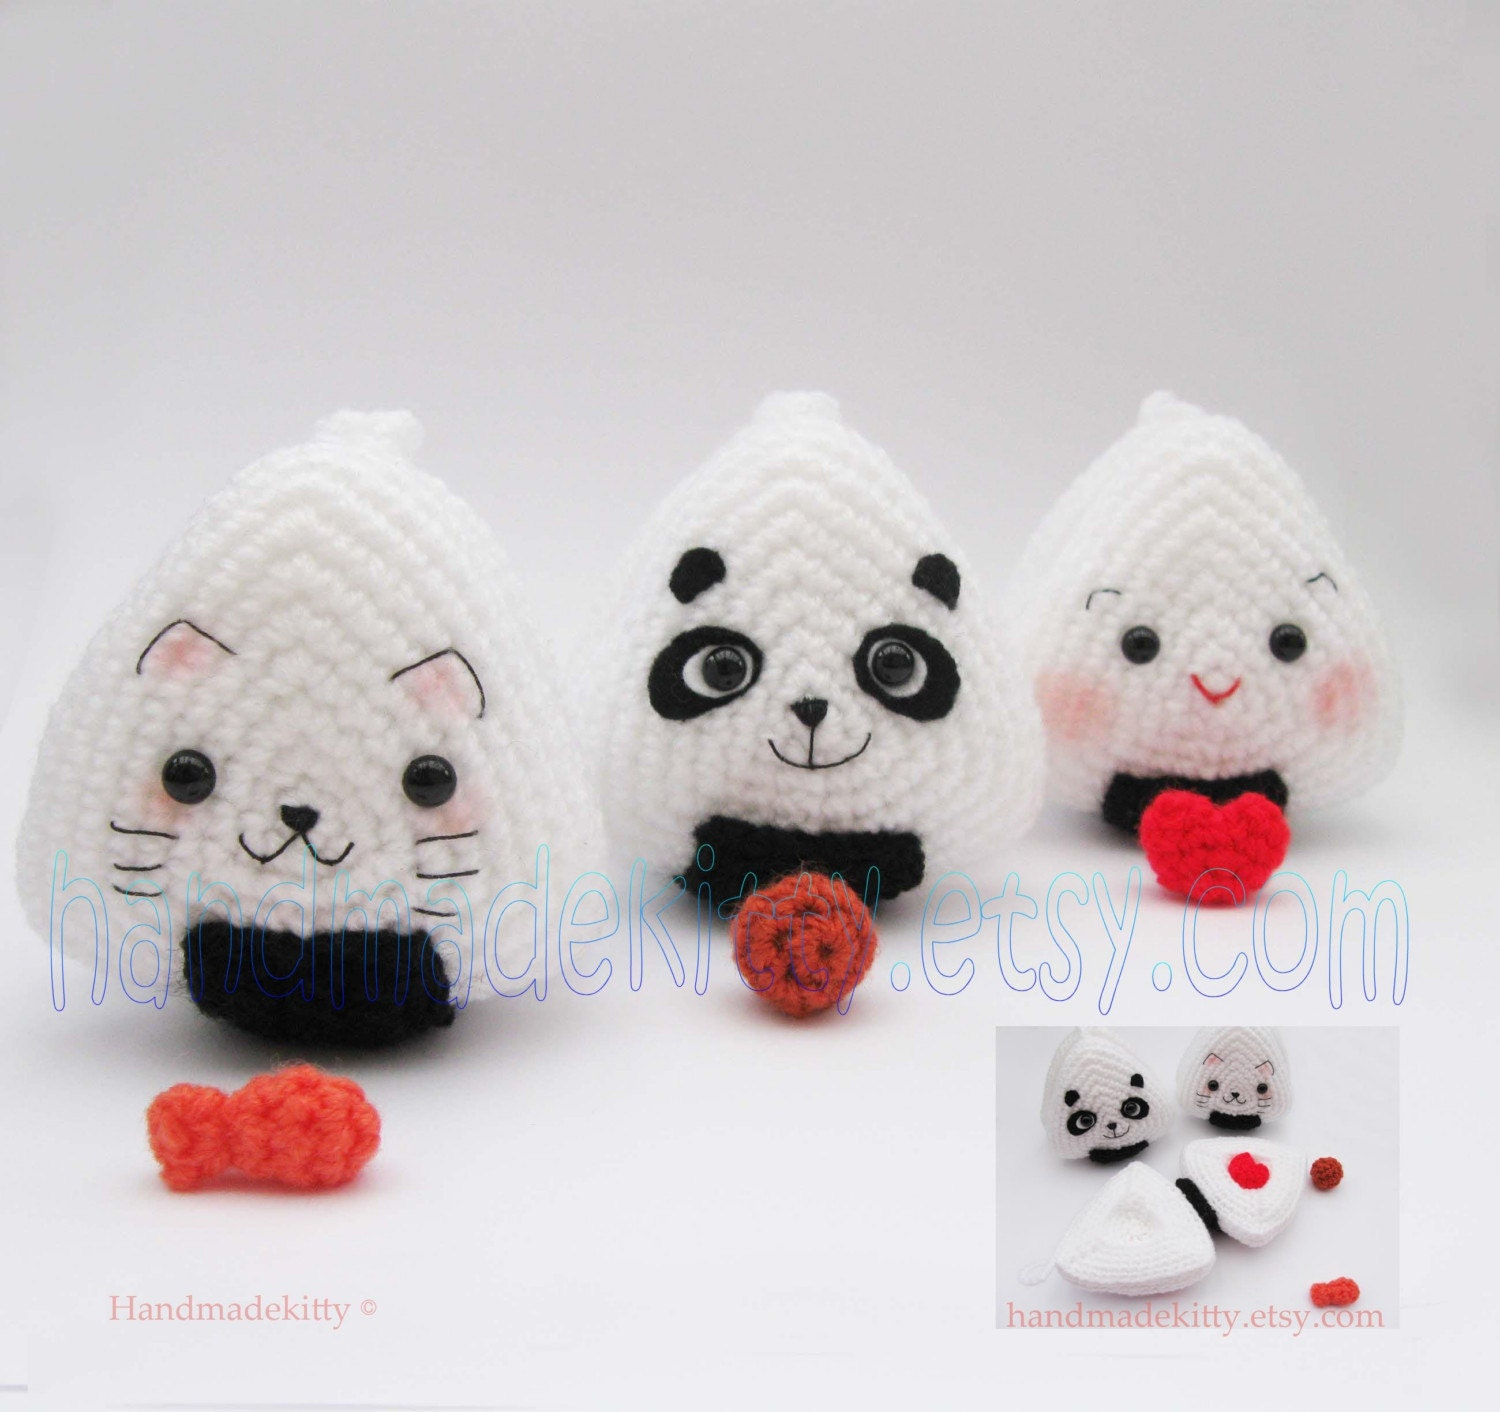 Amigurumi Japanese Patterns Free : HandmadeKitty: Japanese Onigiri Dolls Kitty Panda with ...